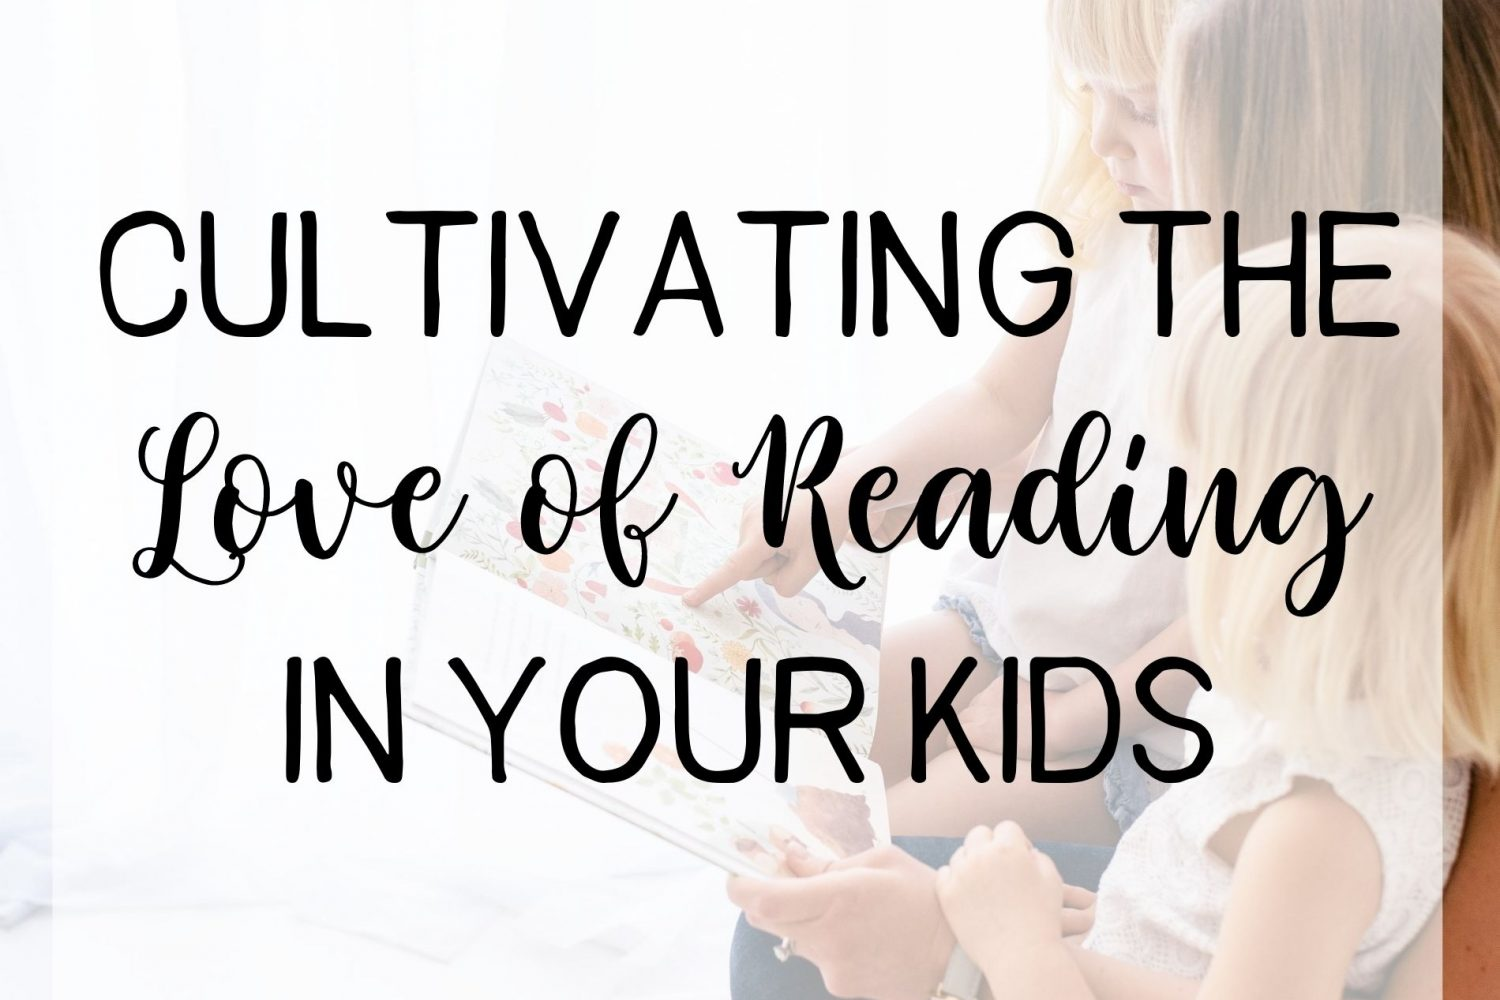 Cultivating the Love of Reading in Your Kids